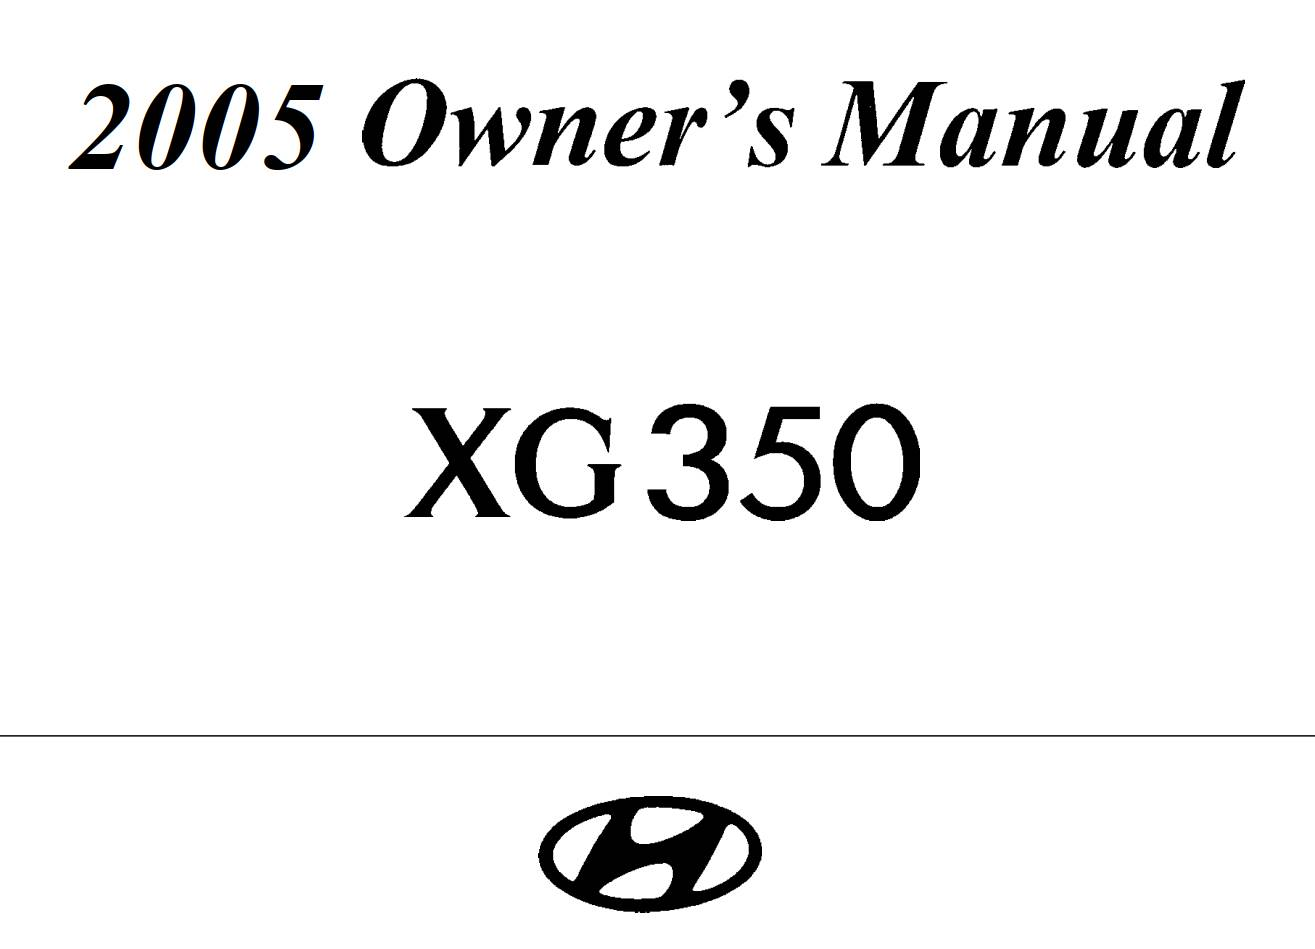 HYUNDAI GX350 L 2005 Owner's Manual